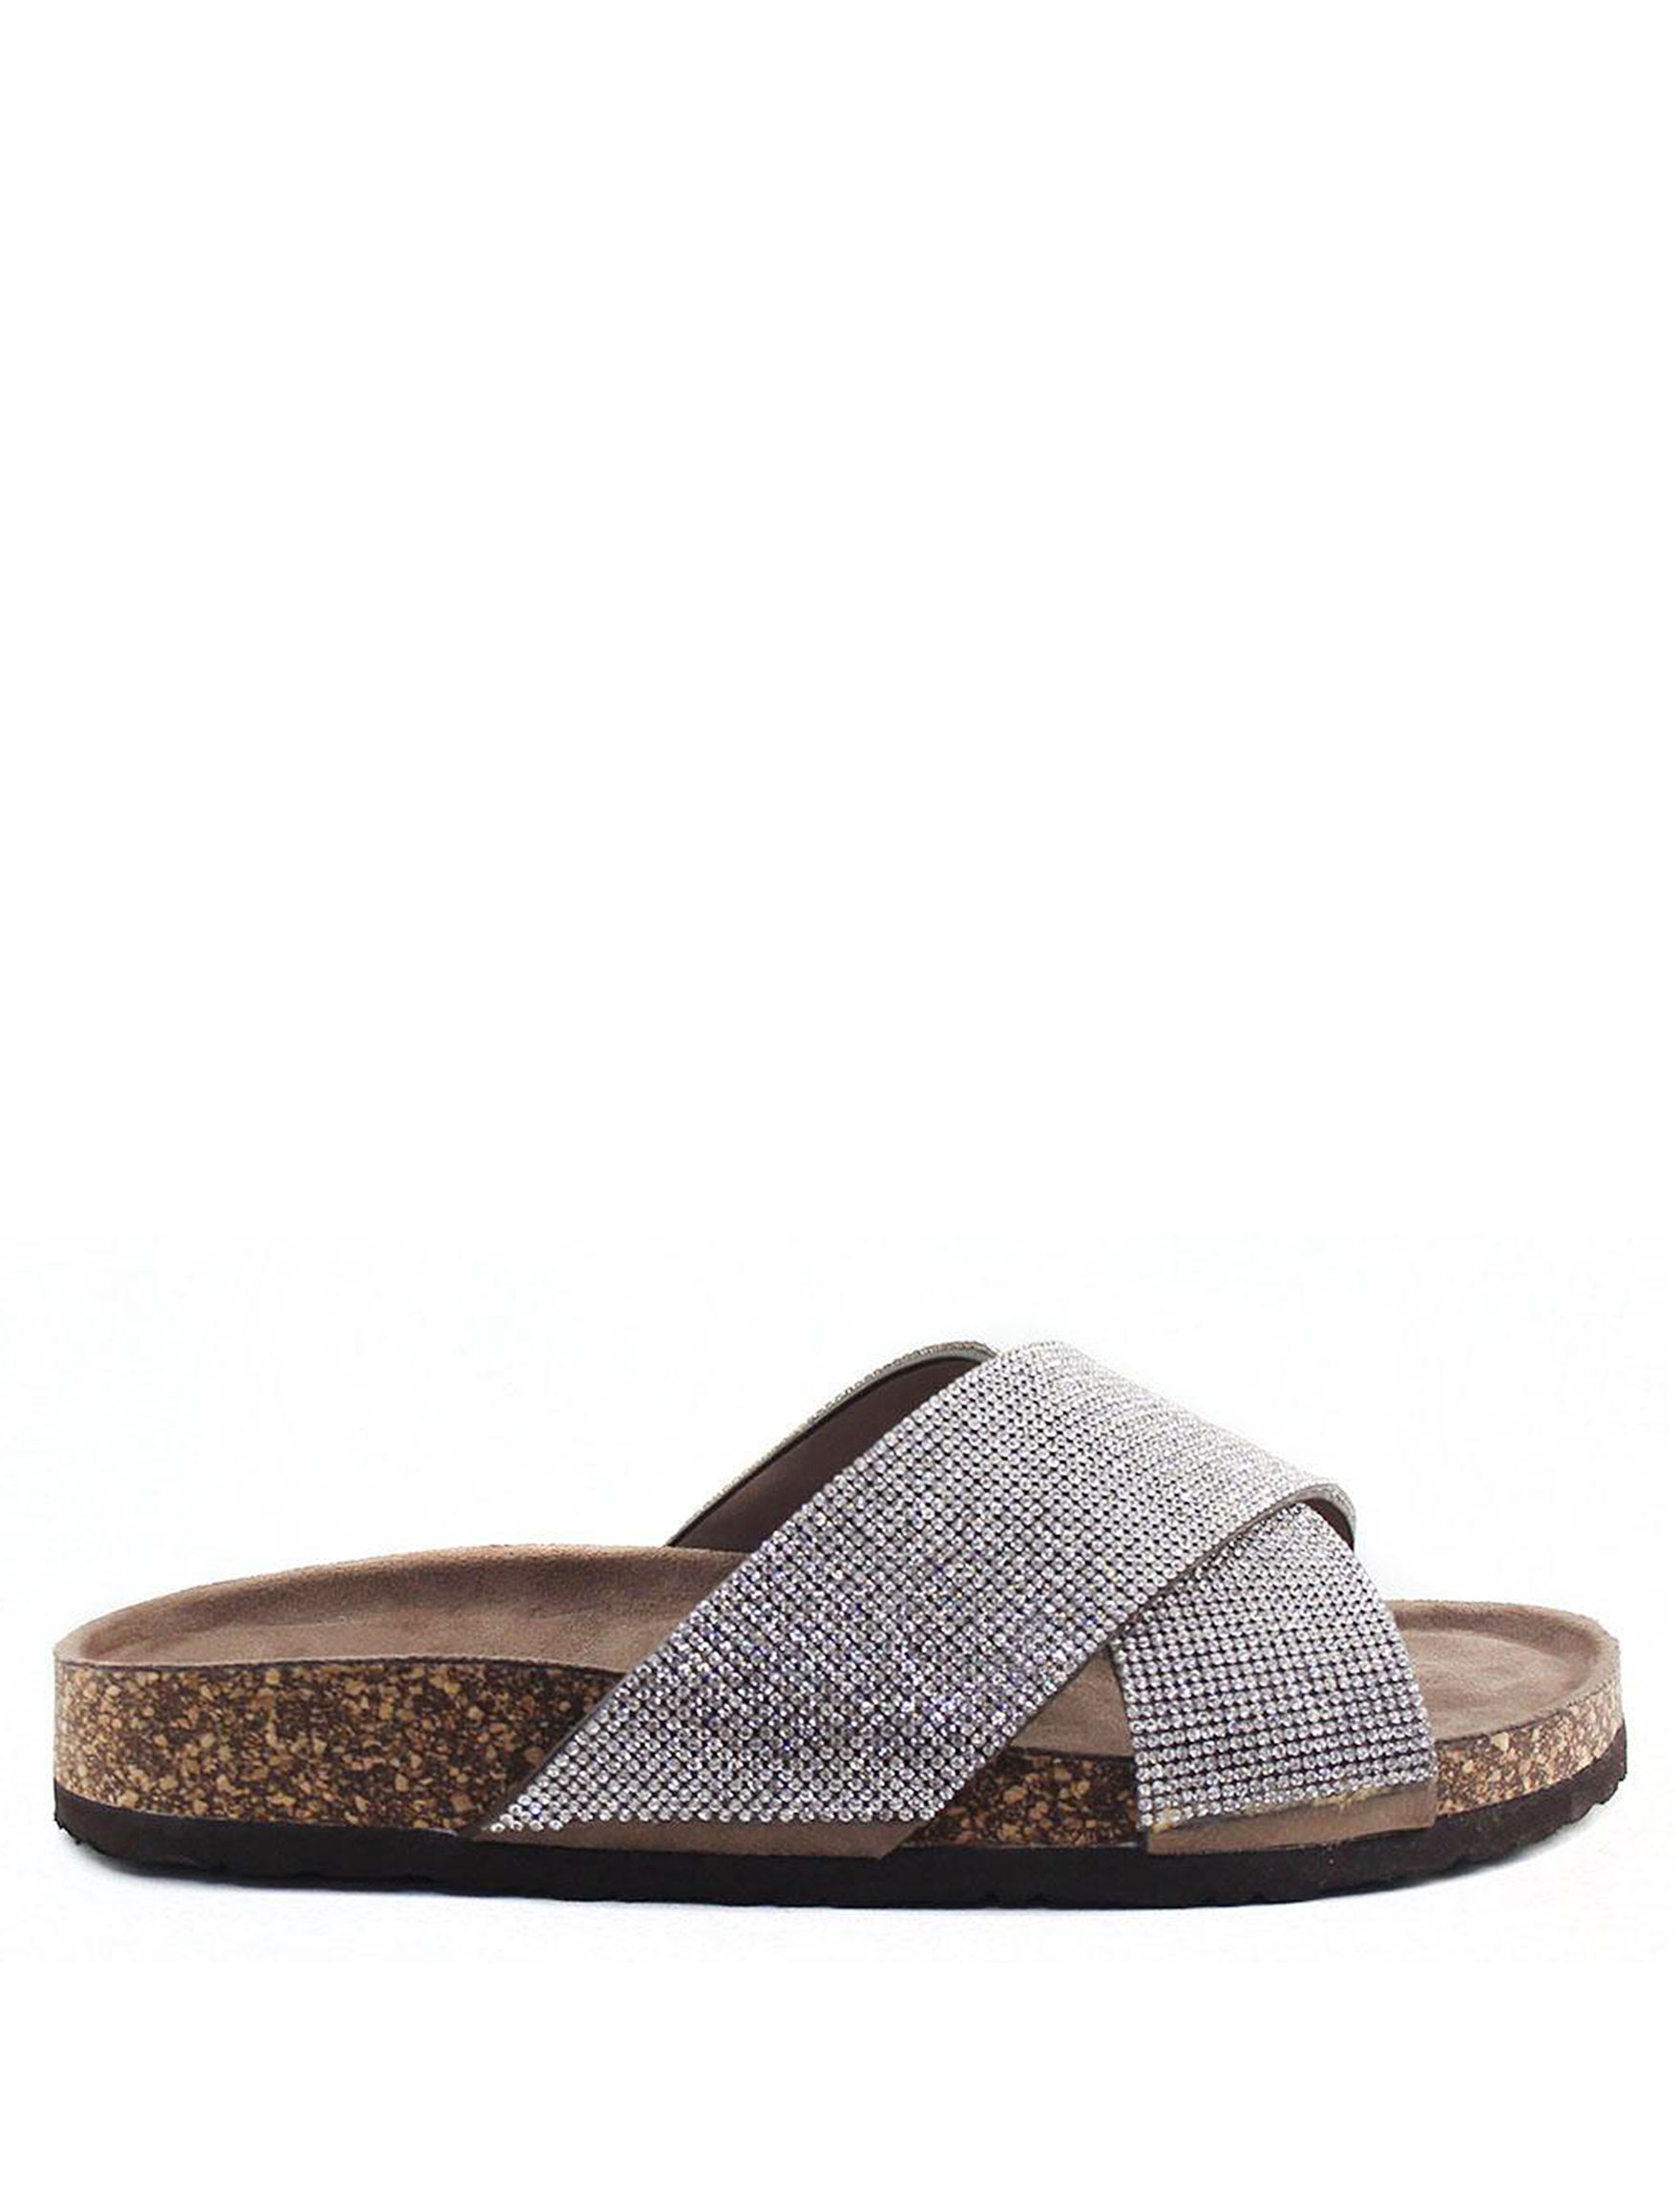 London Rag Taupe Flat Sandals